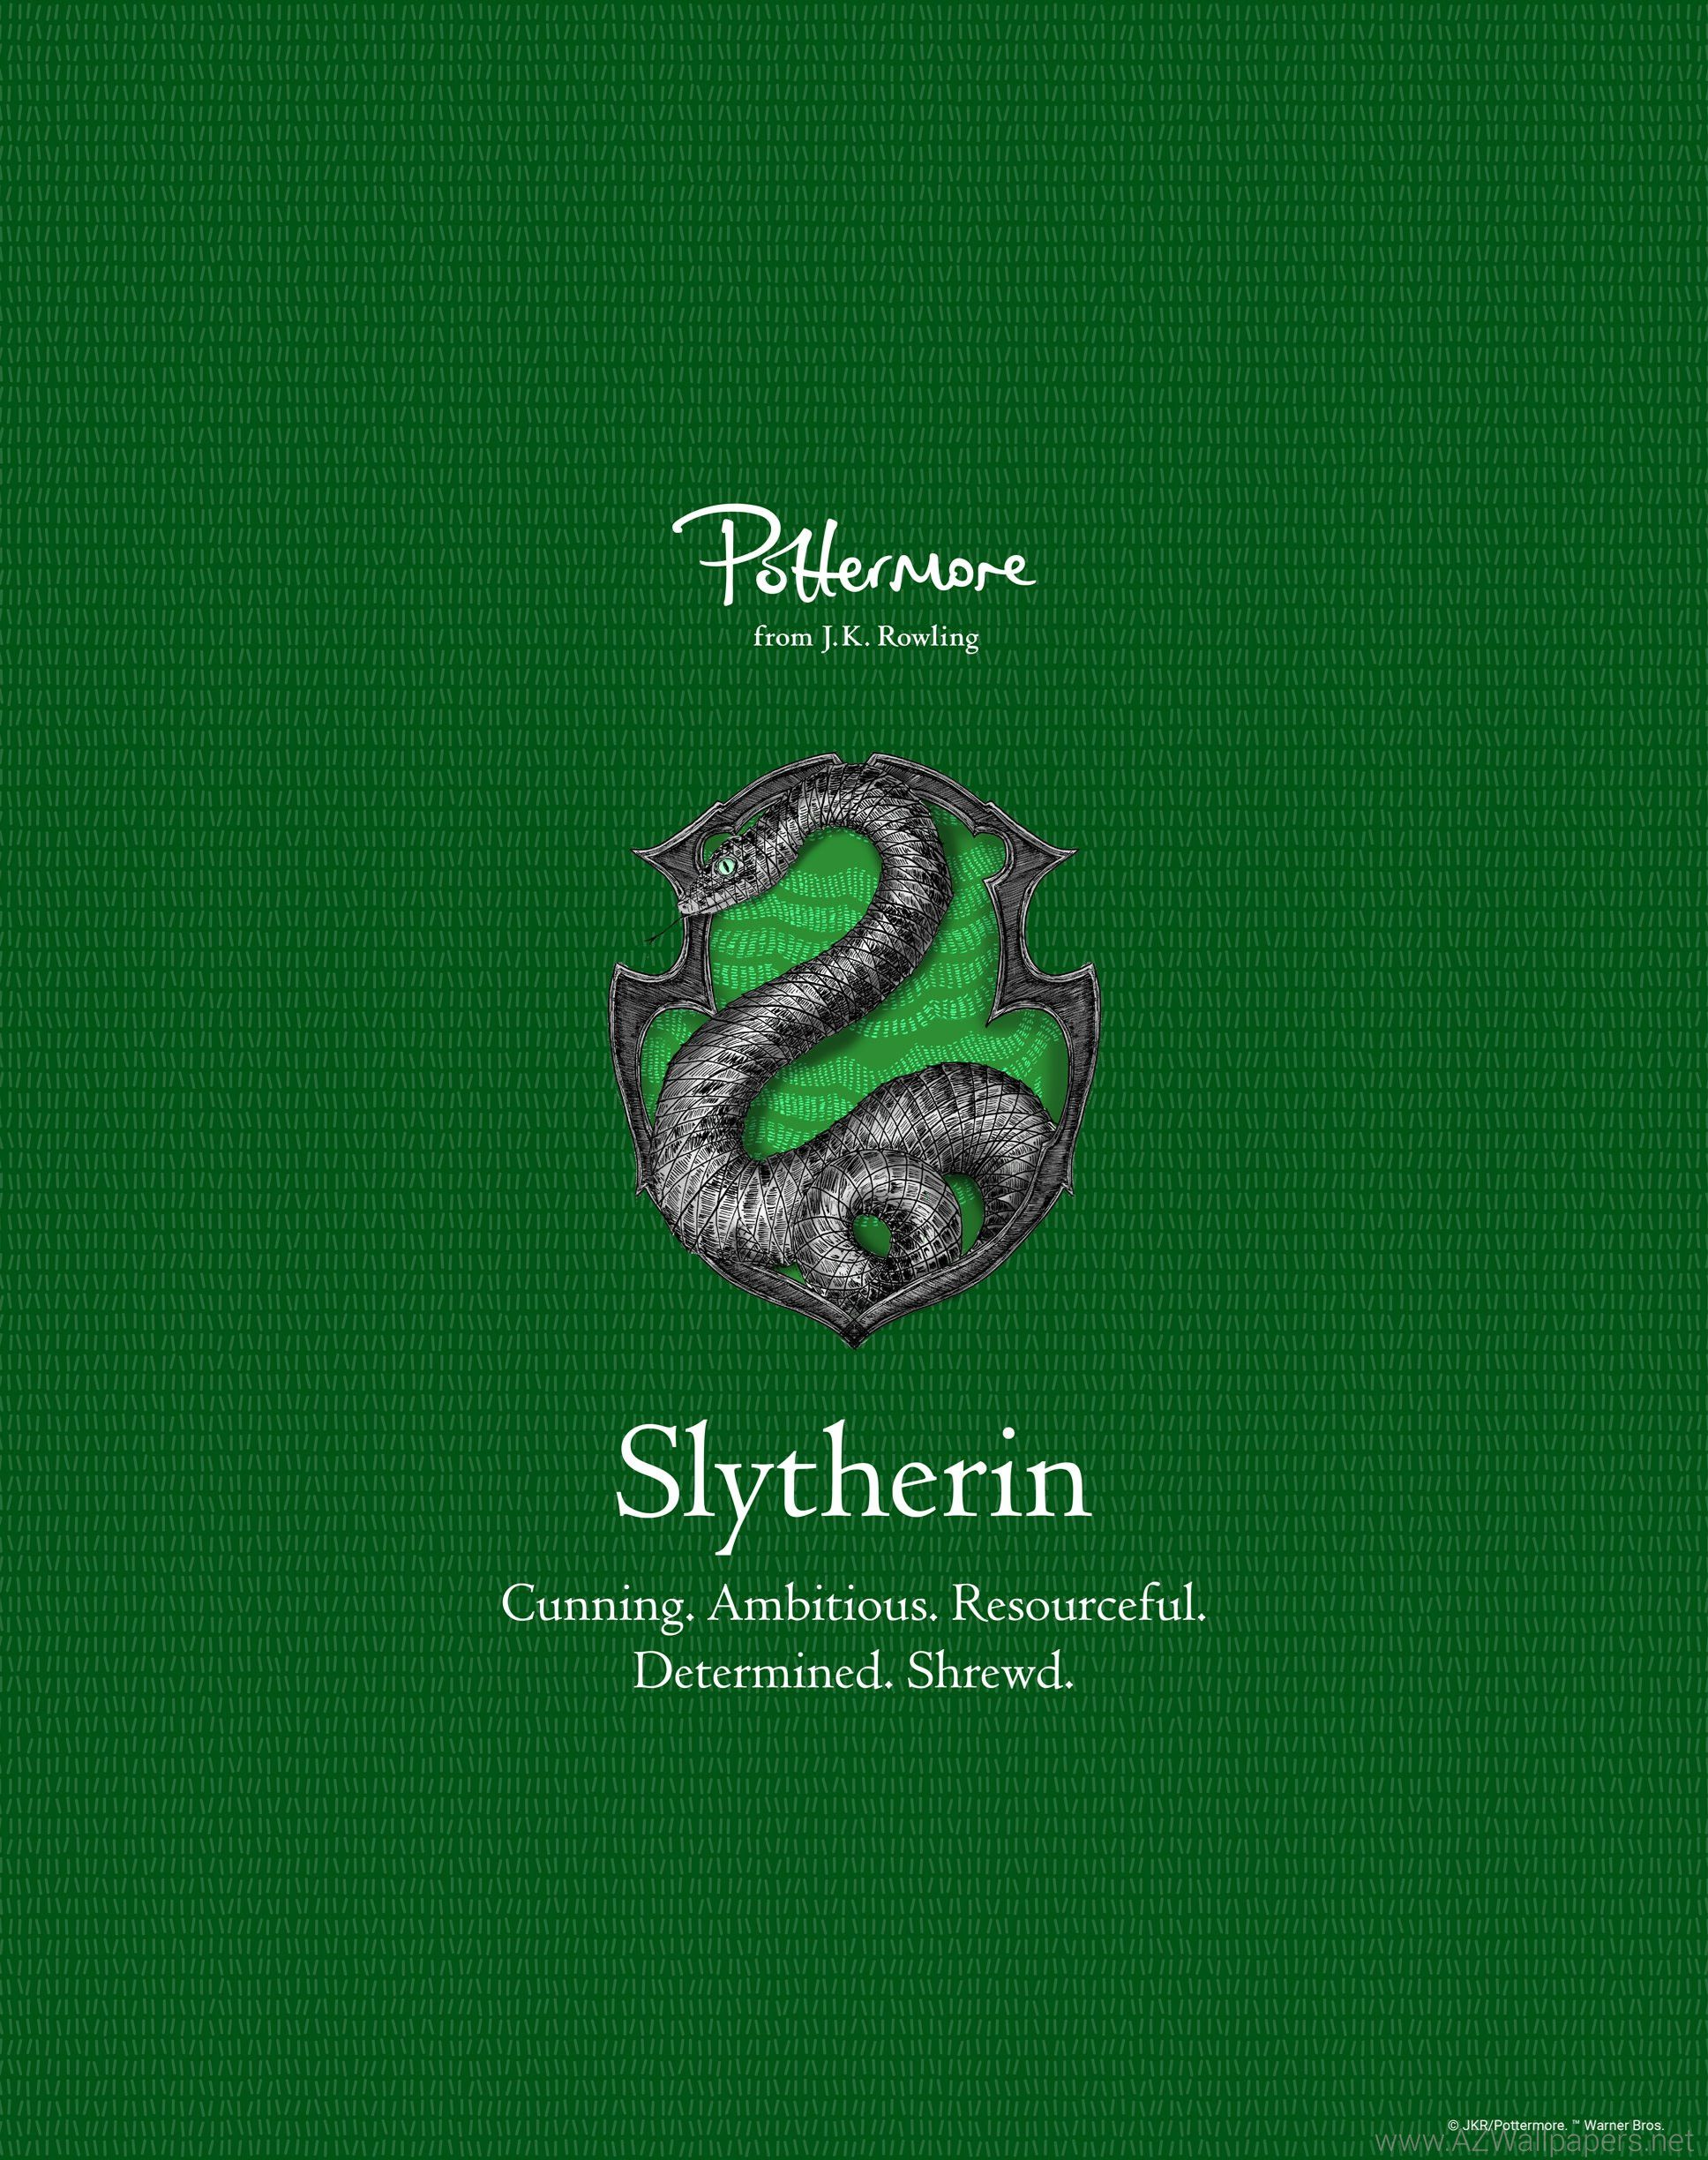 1936x2448 Clean Gray Background Desktop Wallpapers And Photos Free Downloads Slytherin Wallpaper Harry Potter Wallpaper Harry Potter Fandom